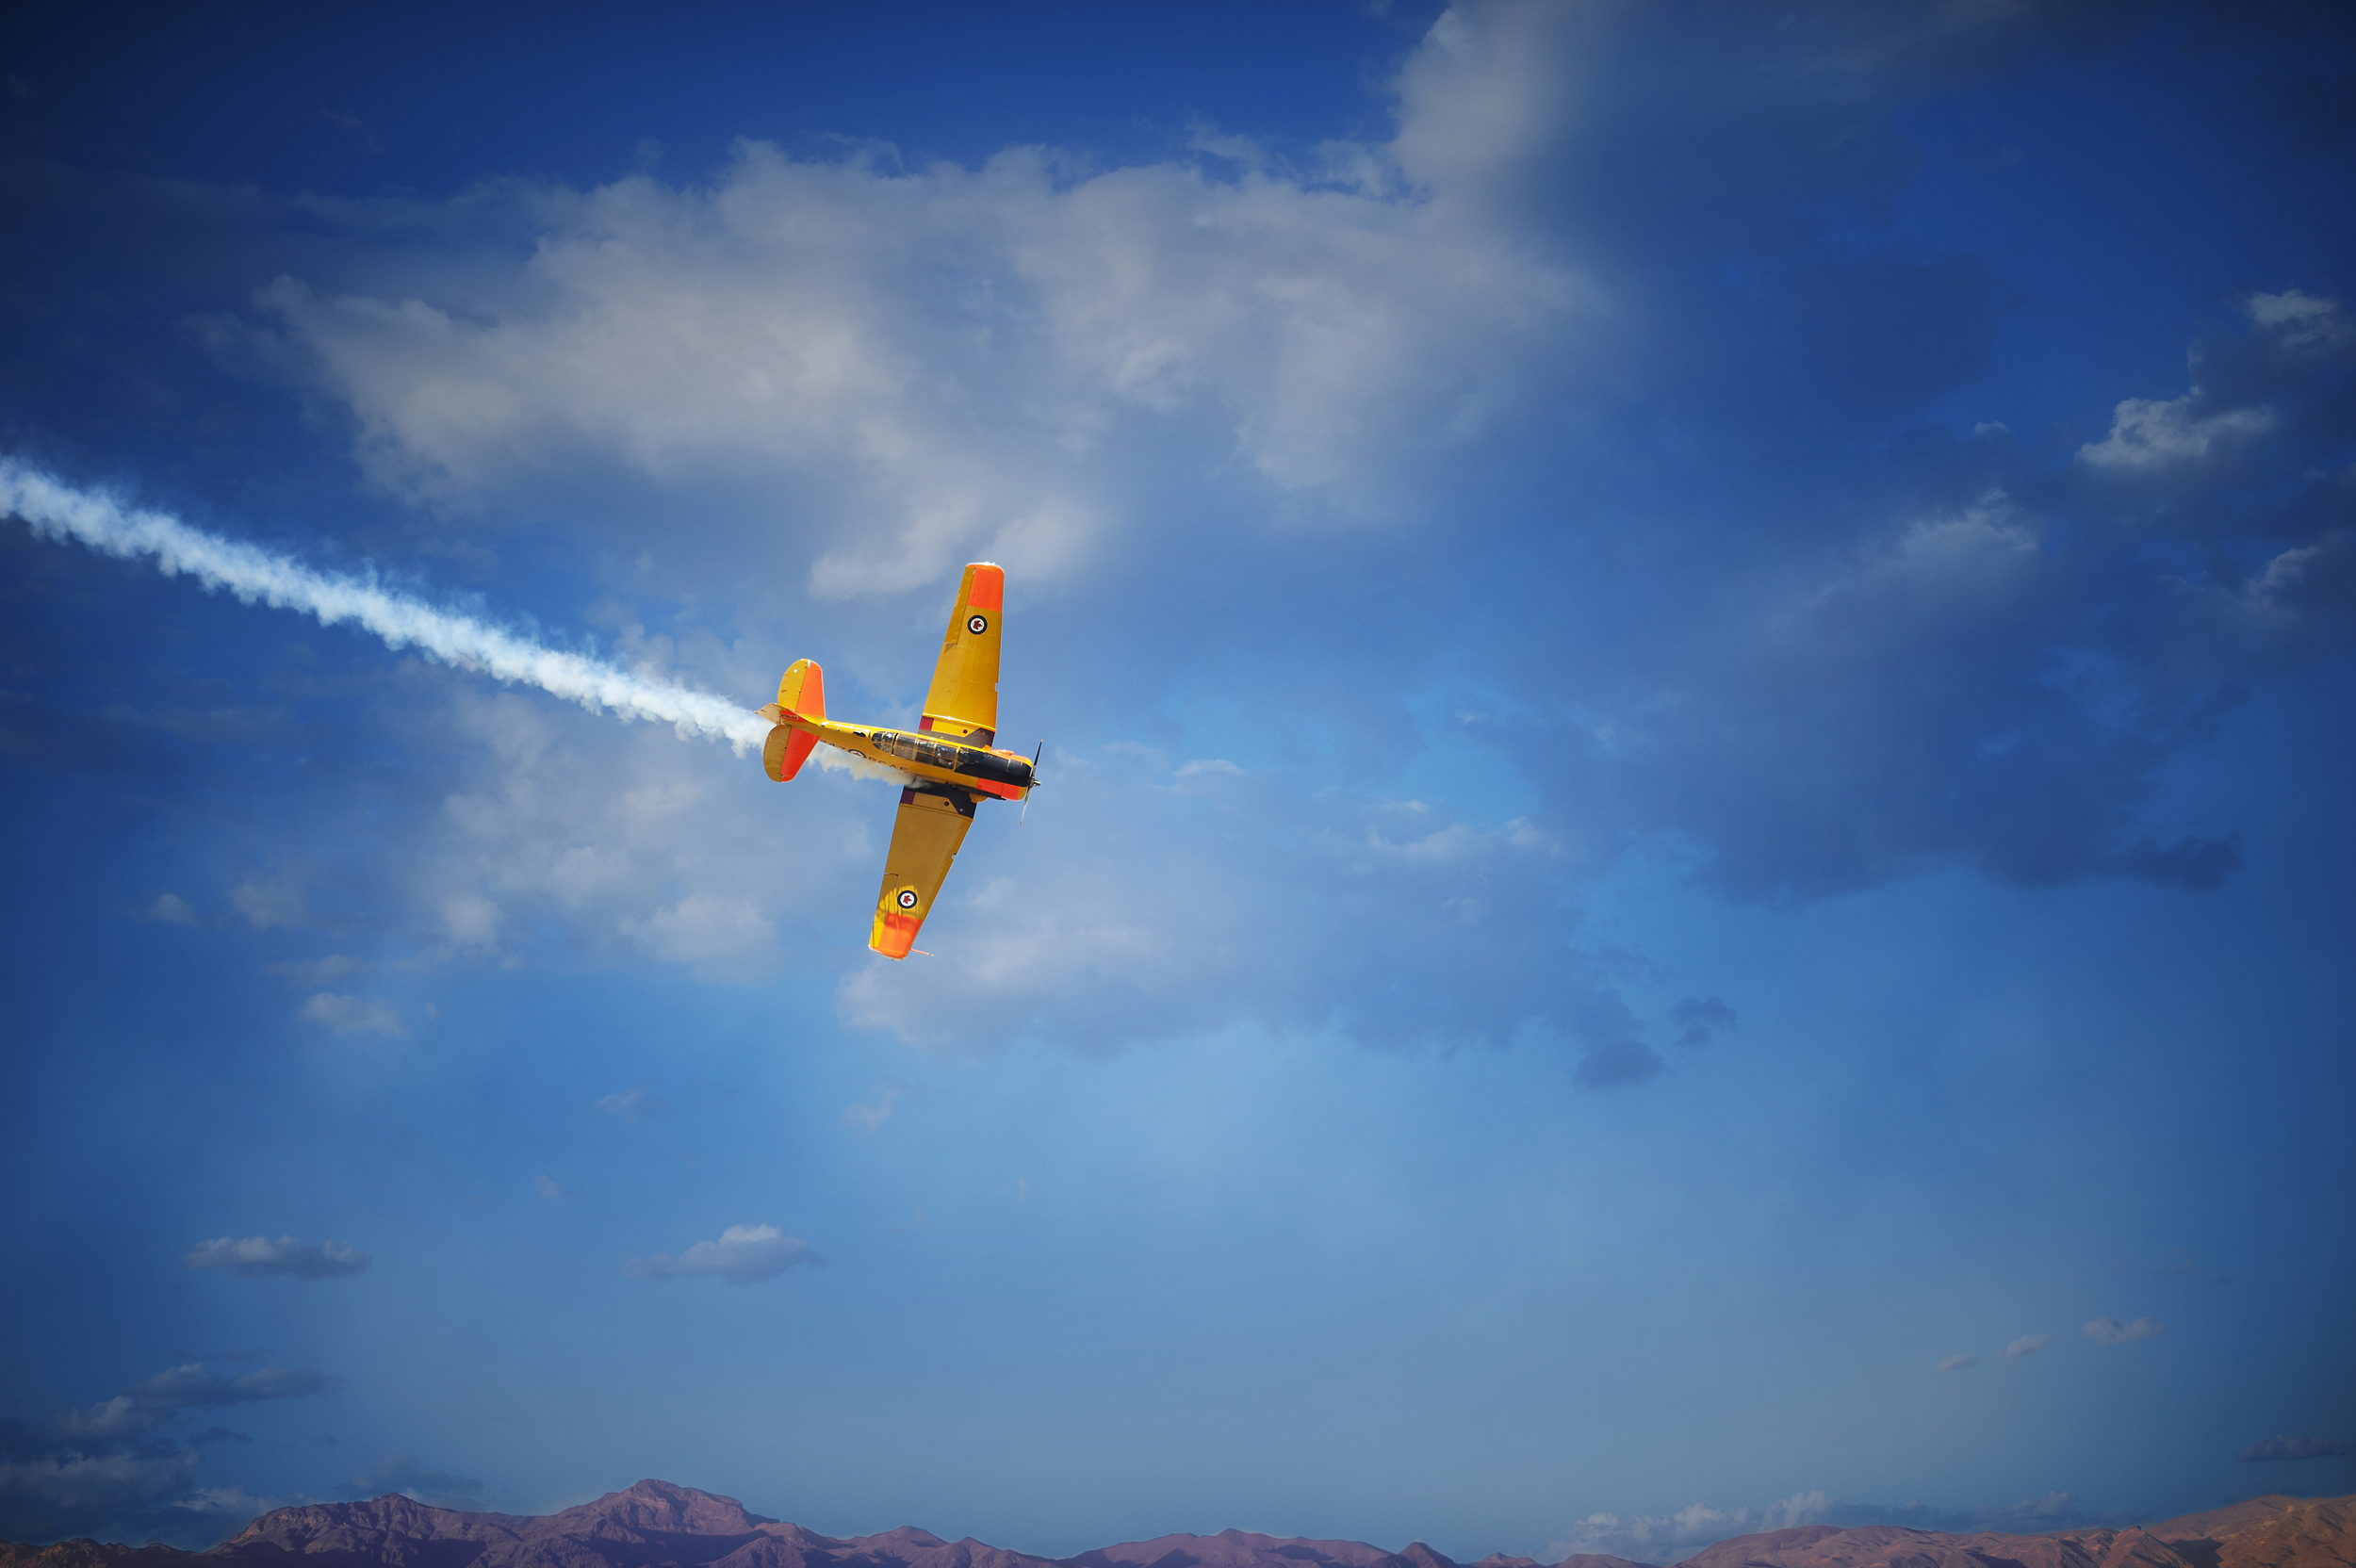 Rick Volker, Banking hard in front of the crowd as he gains some momentum and air speed to perform some more amazing aerobatics.